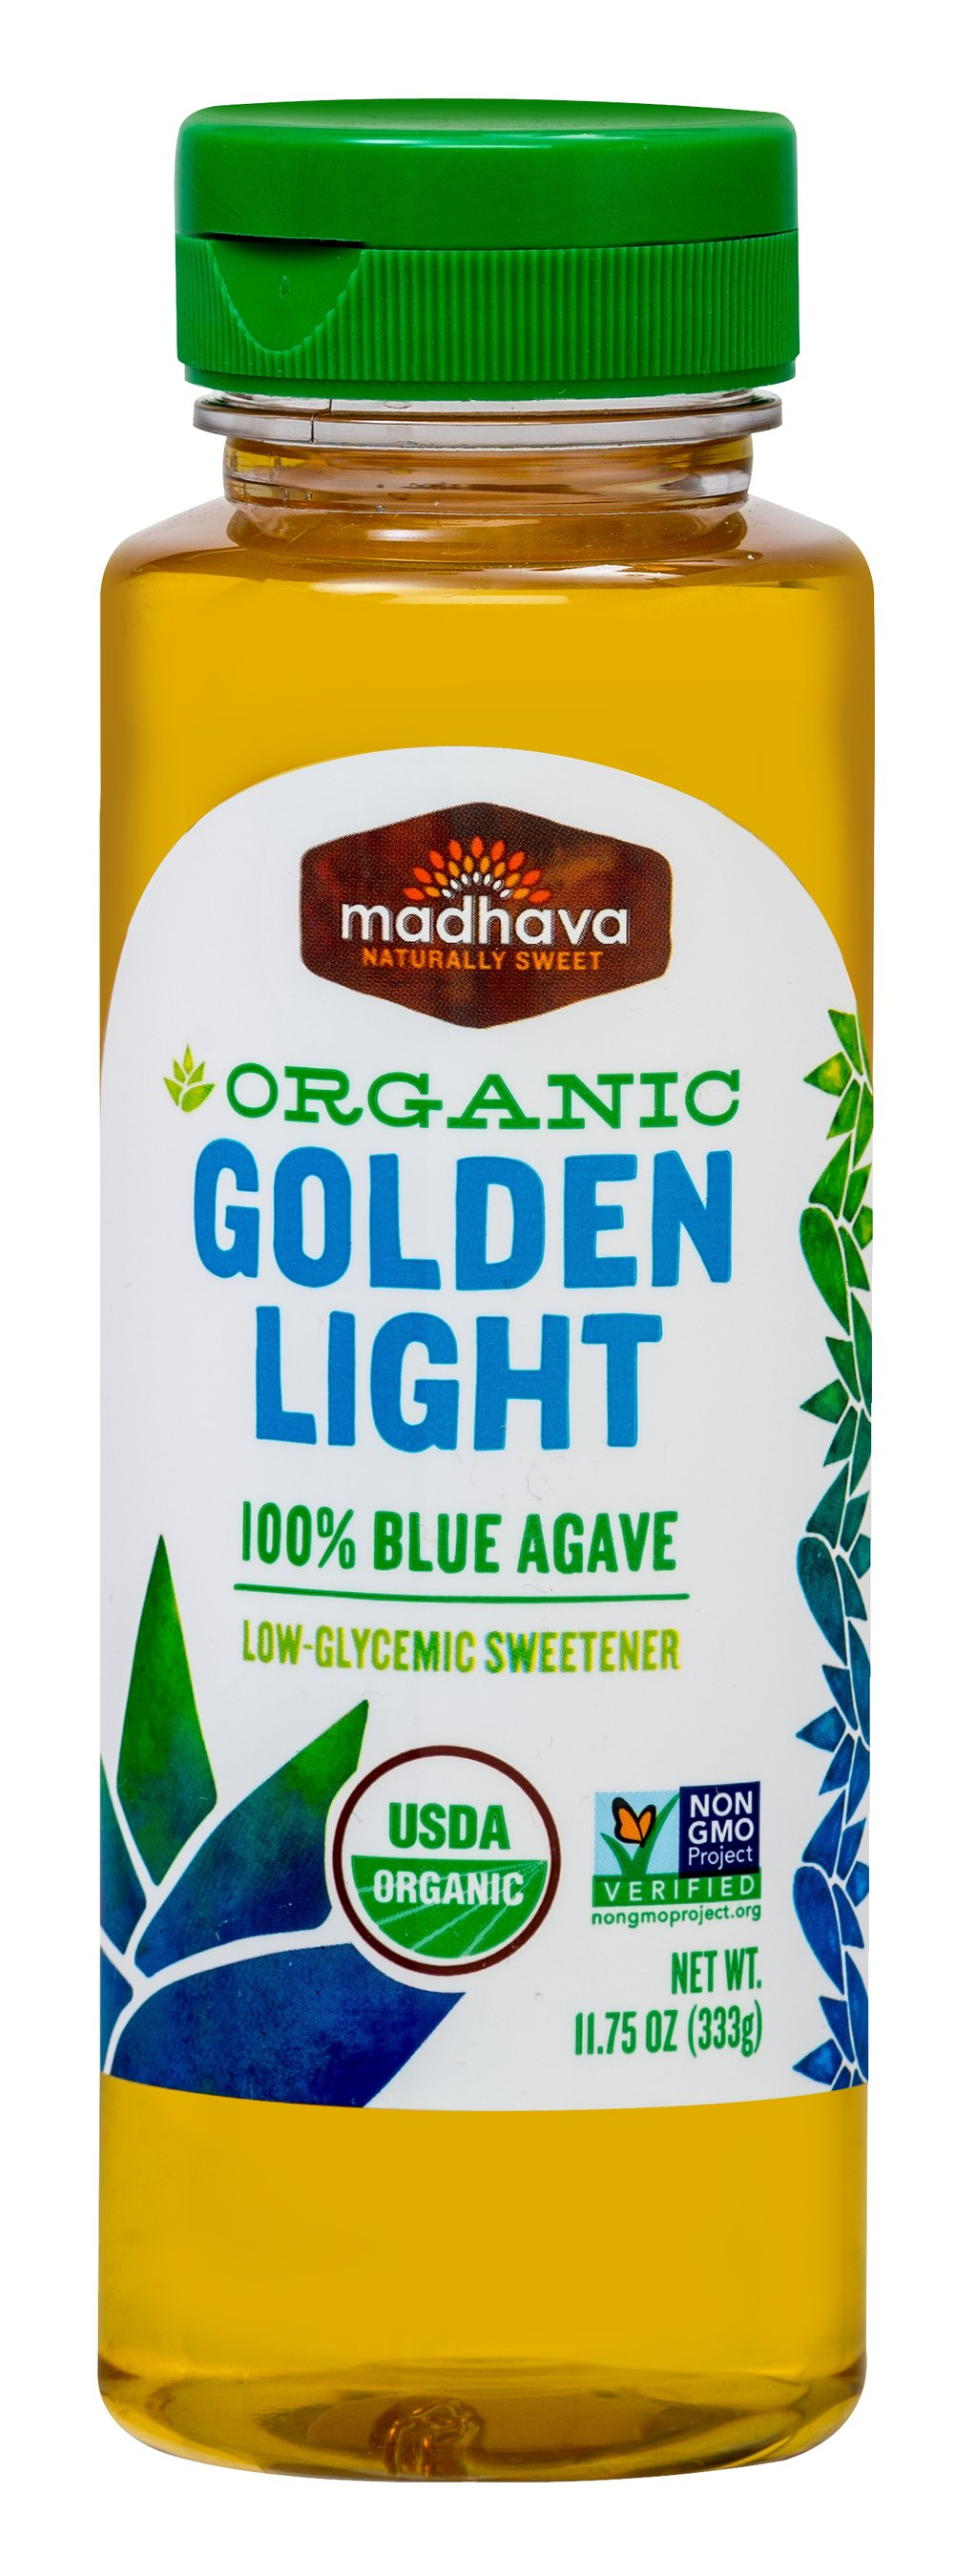 Organic Light Agave <p><strong>From the Manufacturer's Label: </strong></p><p>Madhava Agave is an all-natural sugar replacement made from the juice of the agave plant. It's a simple plant-based food that is a great alternative to processed sugar or artificial sweeteners.</p><p>Just pure deliciousness. Enjoy!</p> 11.75 oz Bottle  $11.49